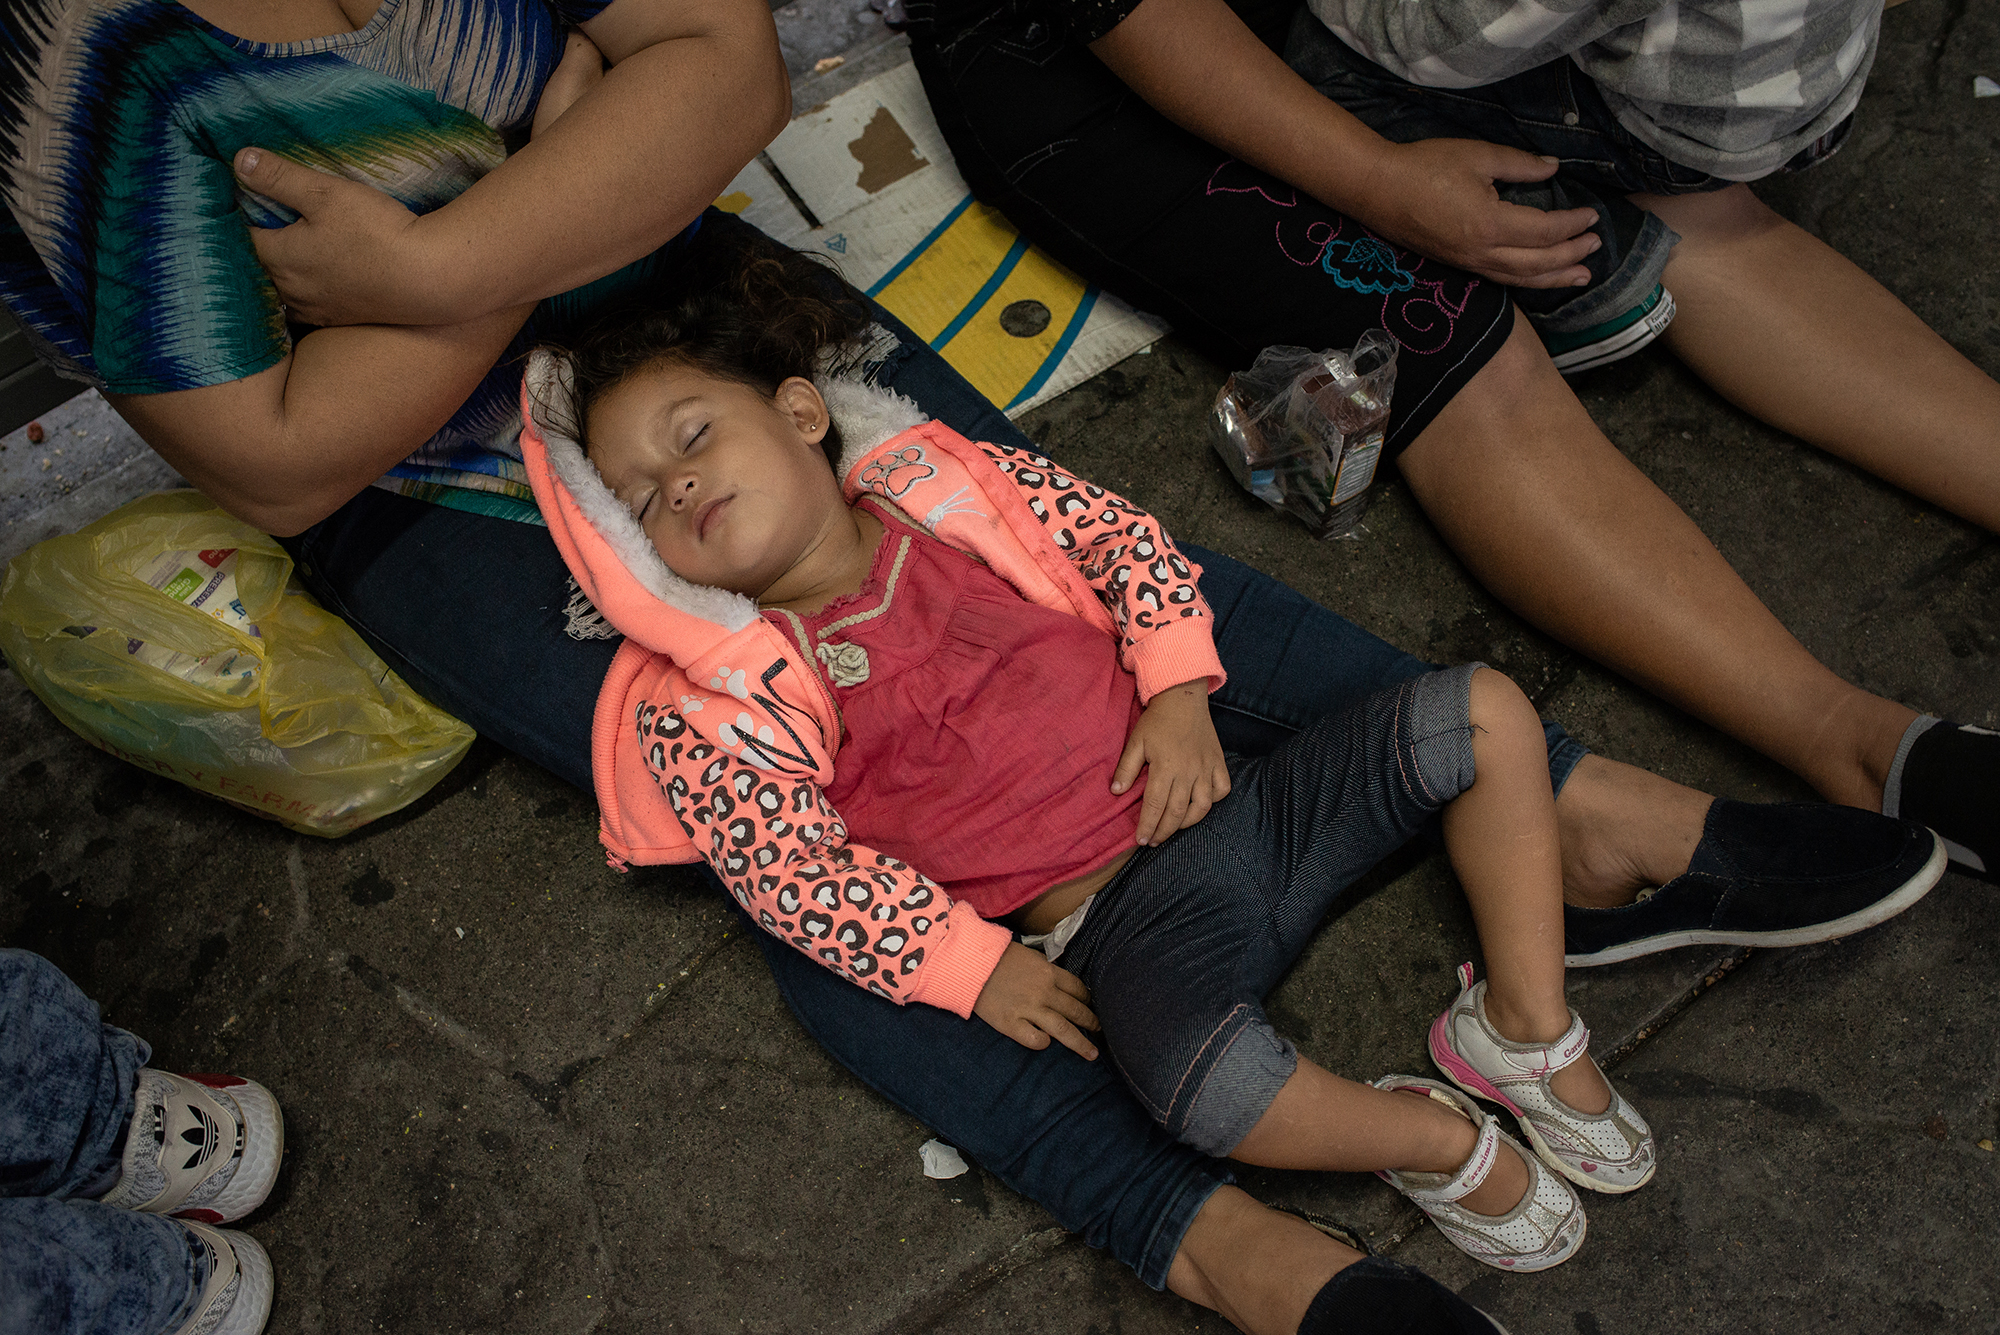 A baby sleeps in the row of the Laredo / Nuevo Laredo International Bridge. Every day a large number of people from different countries come to the border to ask for asylum. They usually spend one or two nights waiting for their turn to be taken care of. Most of them trust that the US government will help them. Laredo / Nuevo Laredo International Bridge. June 25th, 2018. Photographer: Luján Agusti.